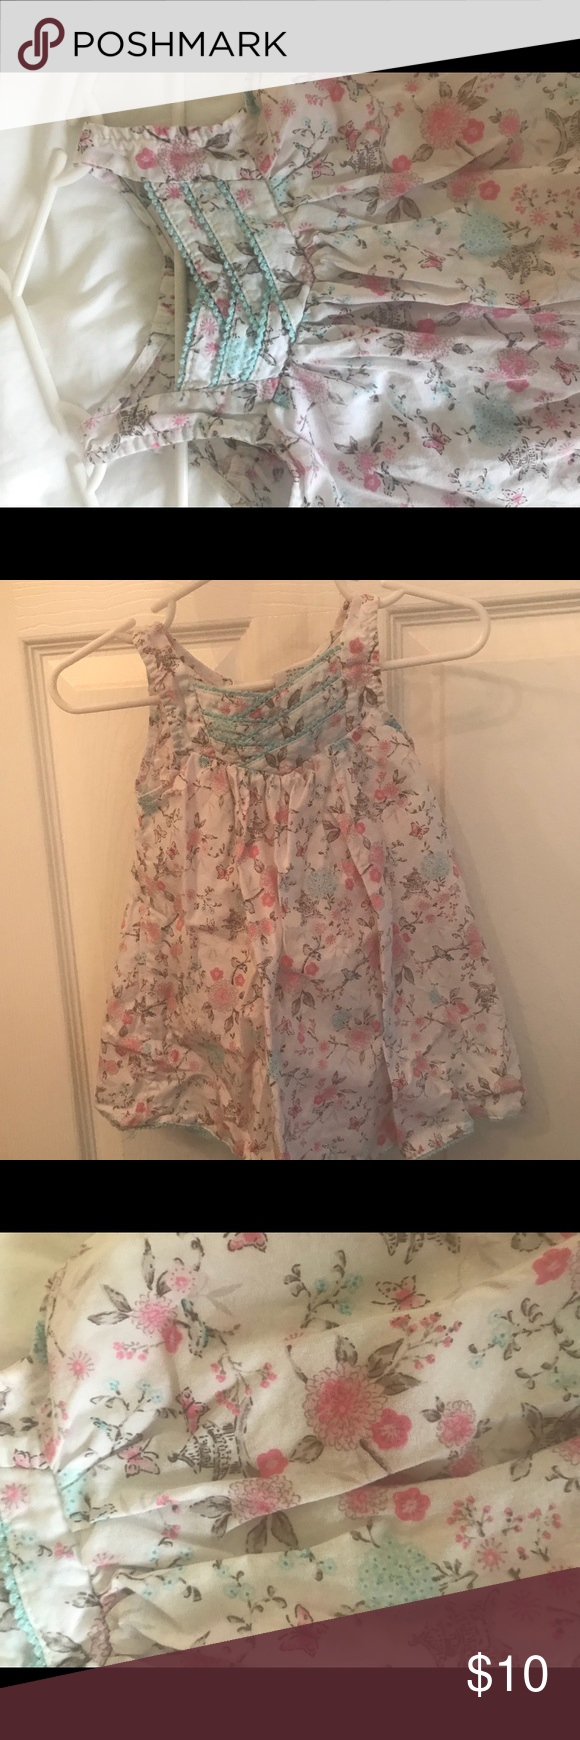 Piper Posie Baby Dress Conditioning Customer Support And Delivery